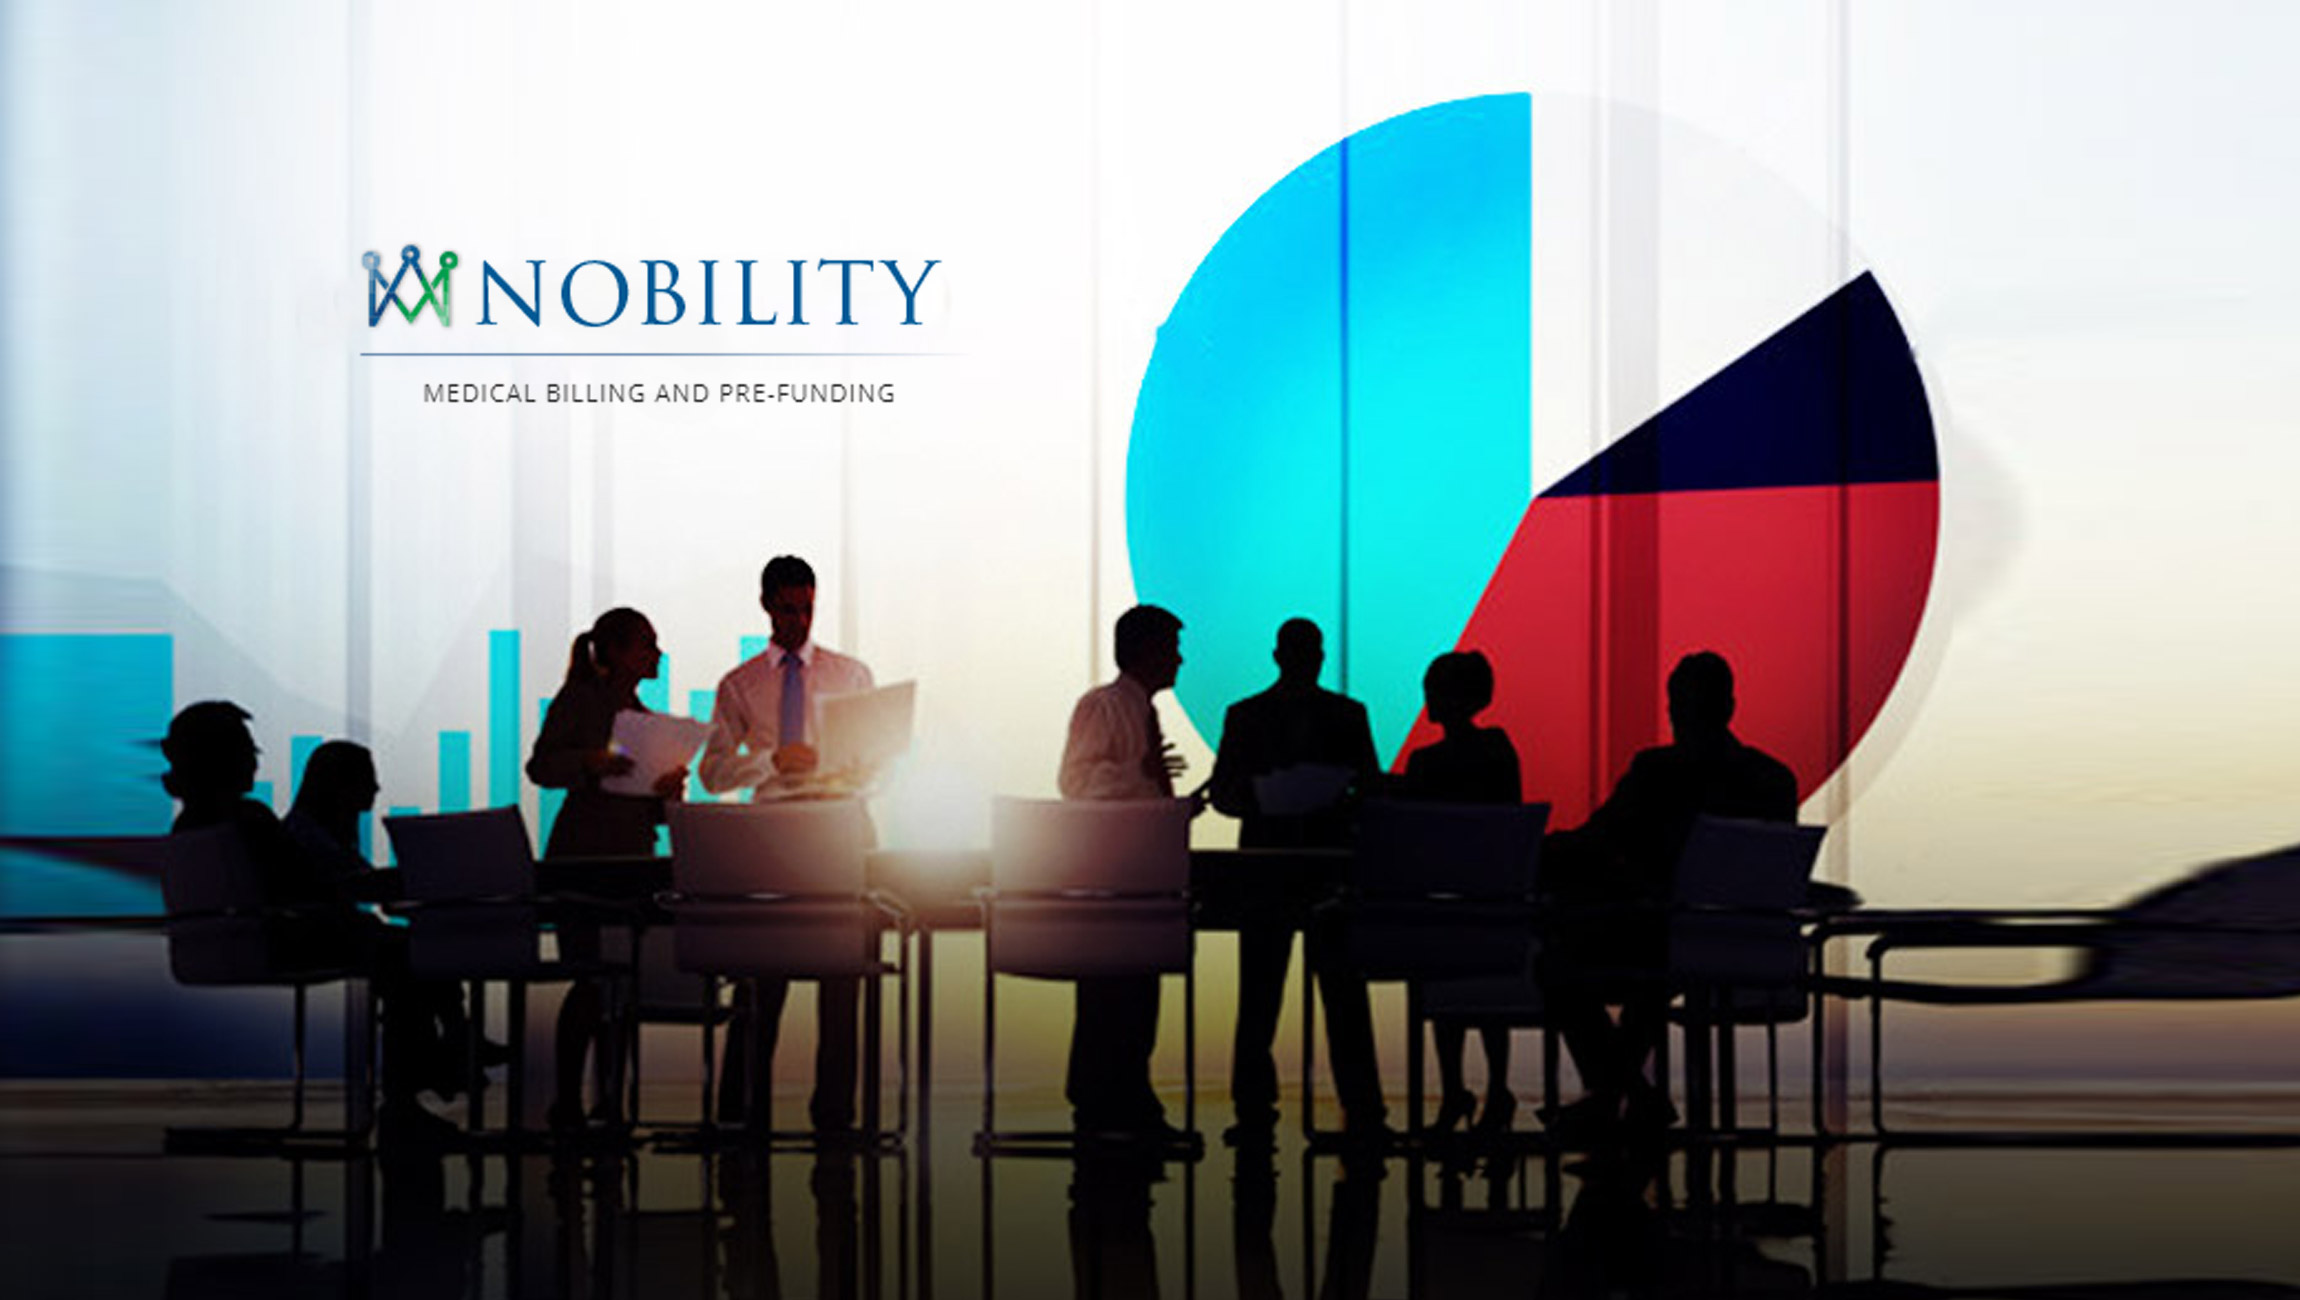 Nobility RCM Continues Growth Trajectory by Expanding Footprint and Adding to Executive Team